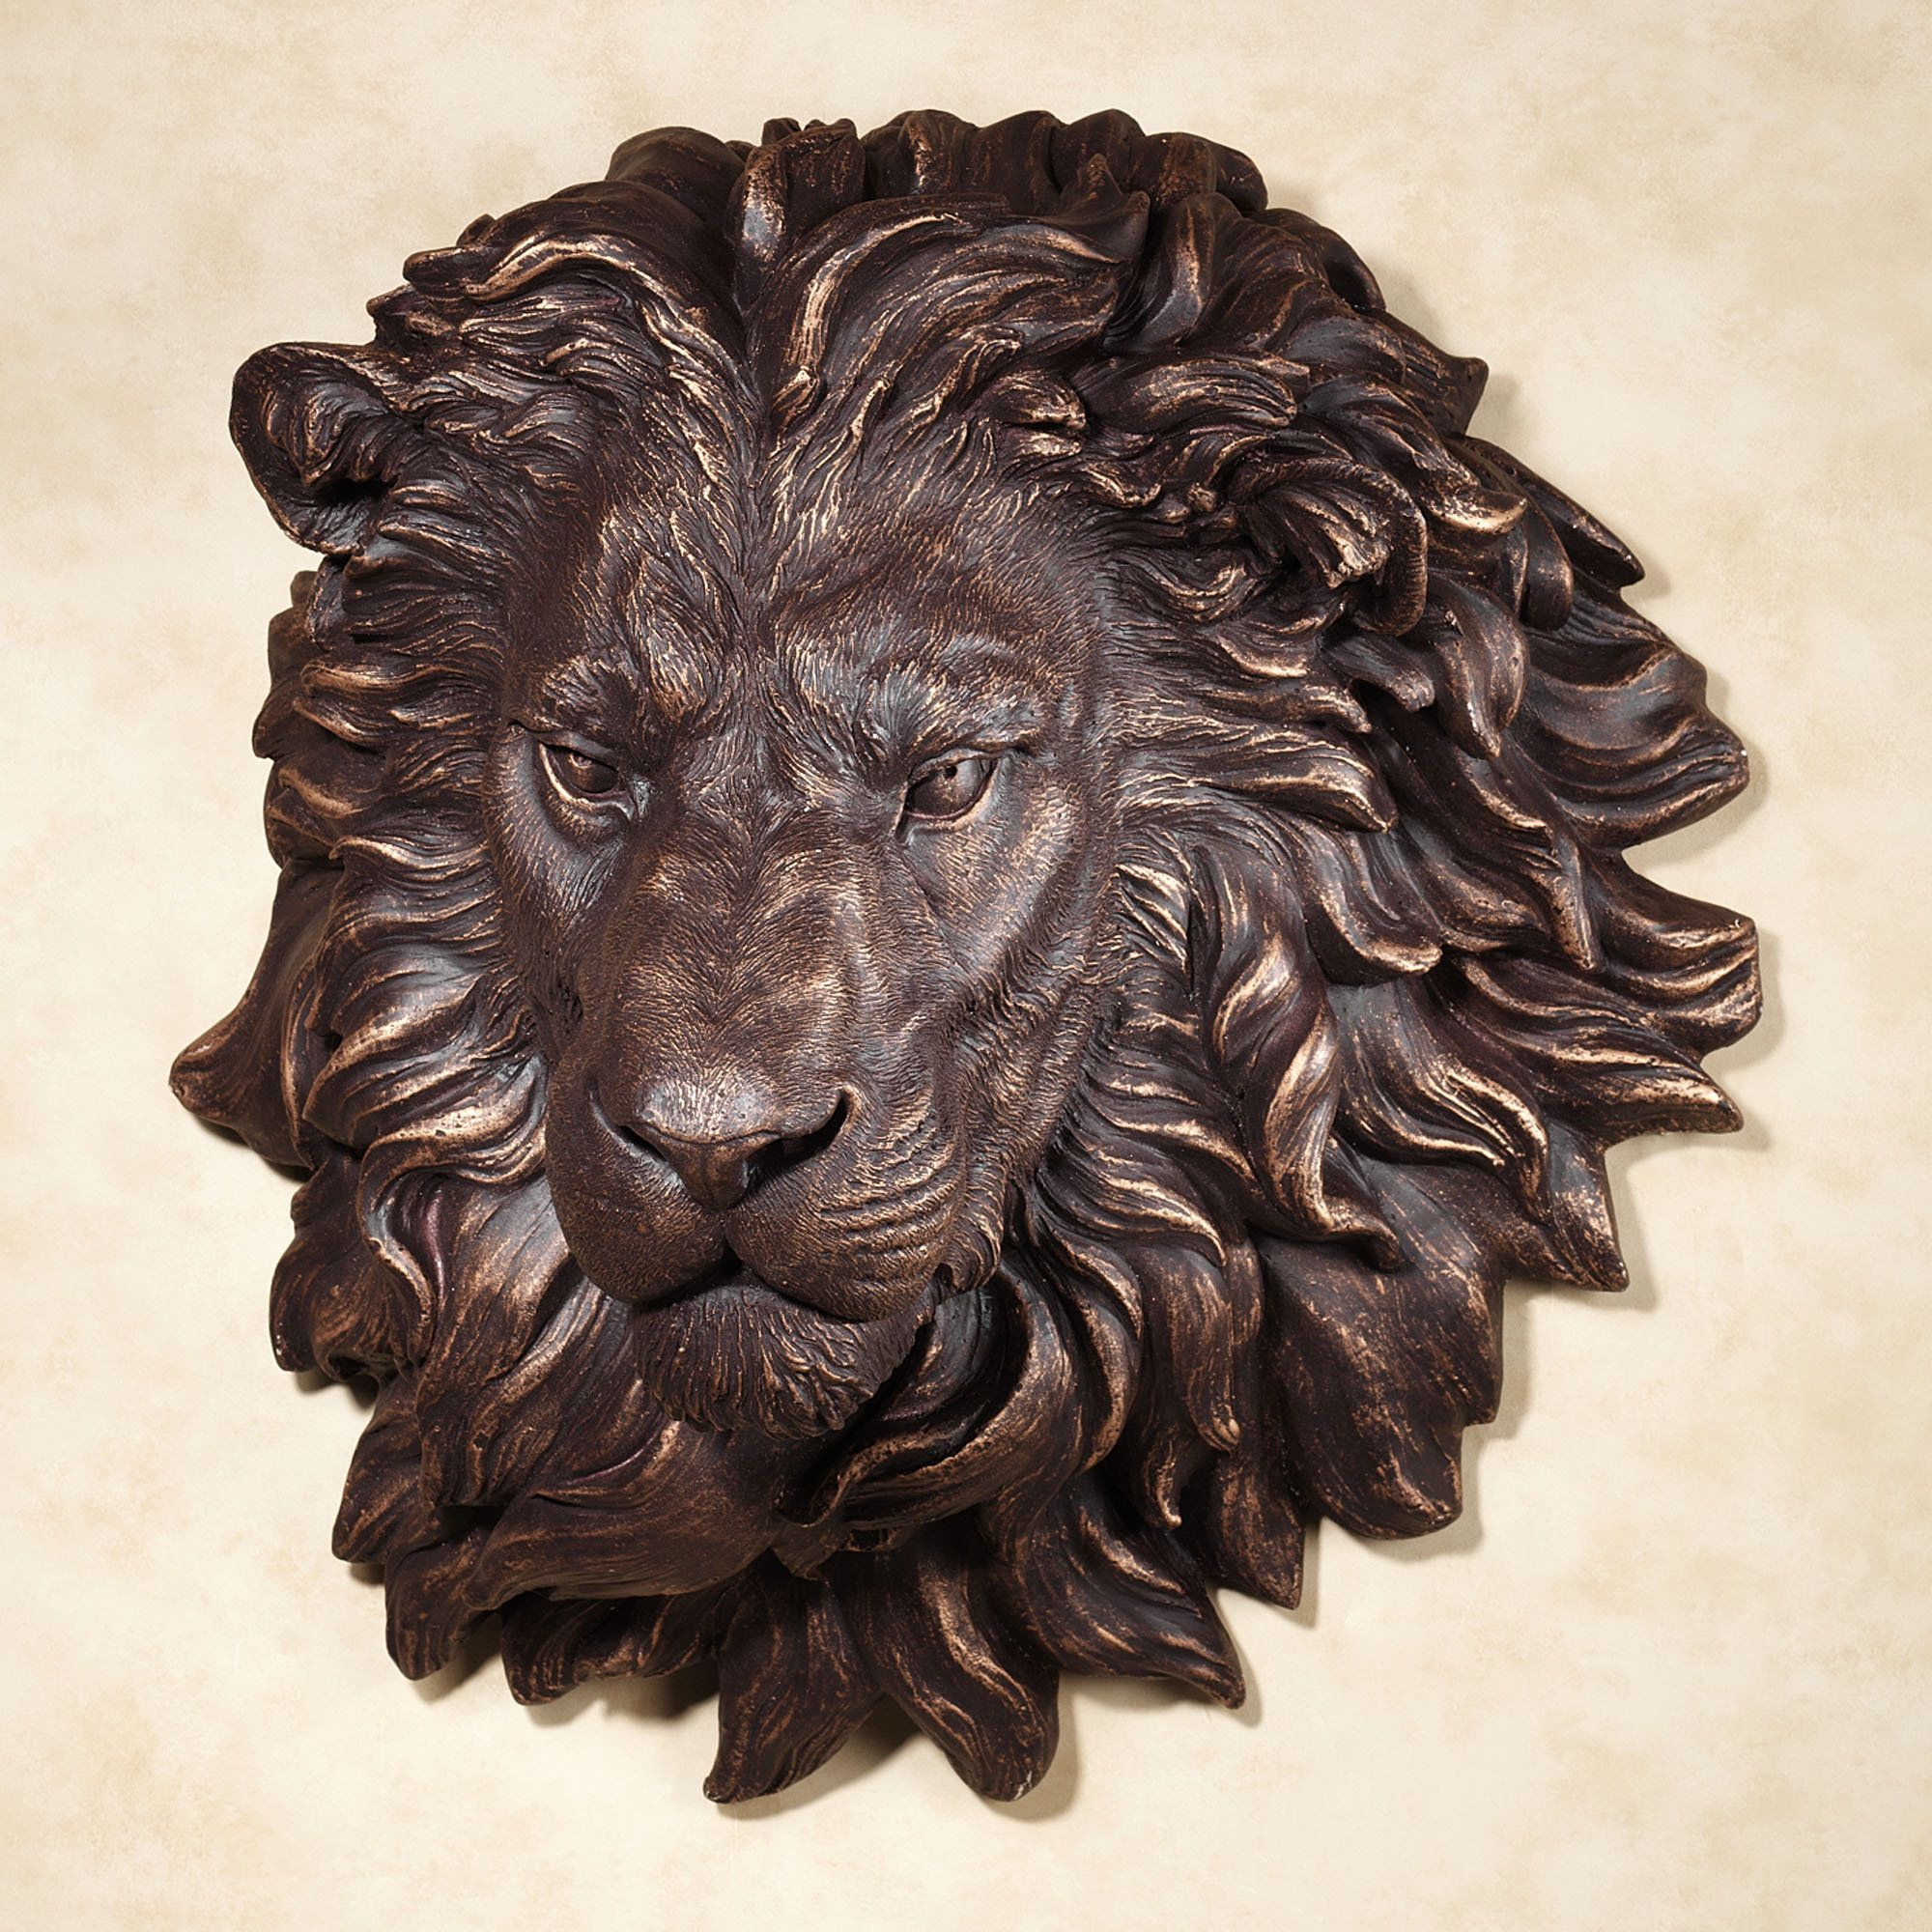 power and presence lion head wall sculpture best lions and lion art ideas. Black Bedroom Furniture Sets. Home Design Ideas